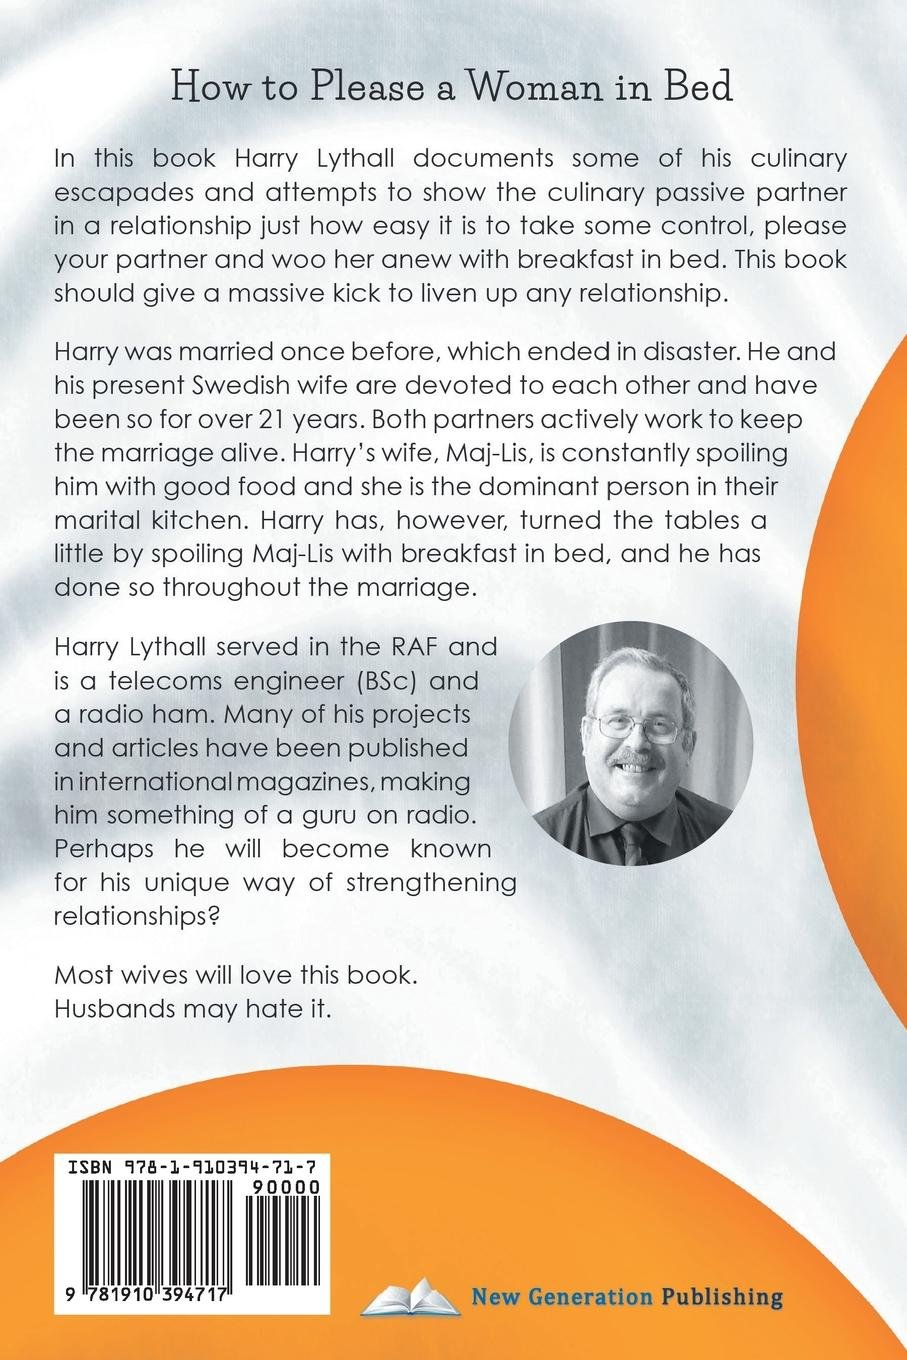 How To Please A Woman In Bed Harry Lythall 9781910394717 Amazon Analogue Radio Control By Sm0vpo Books